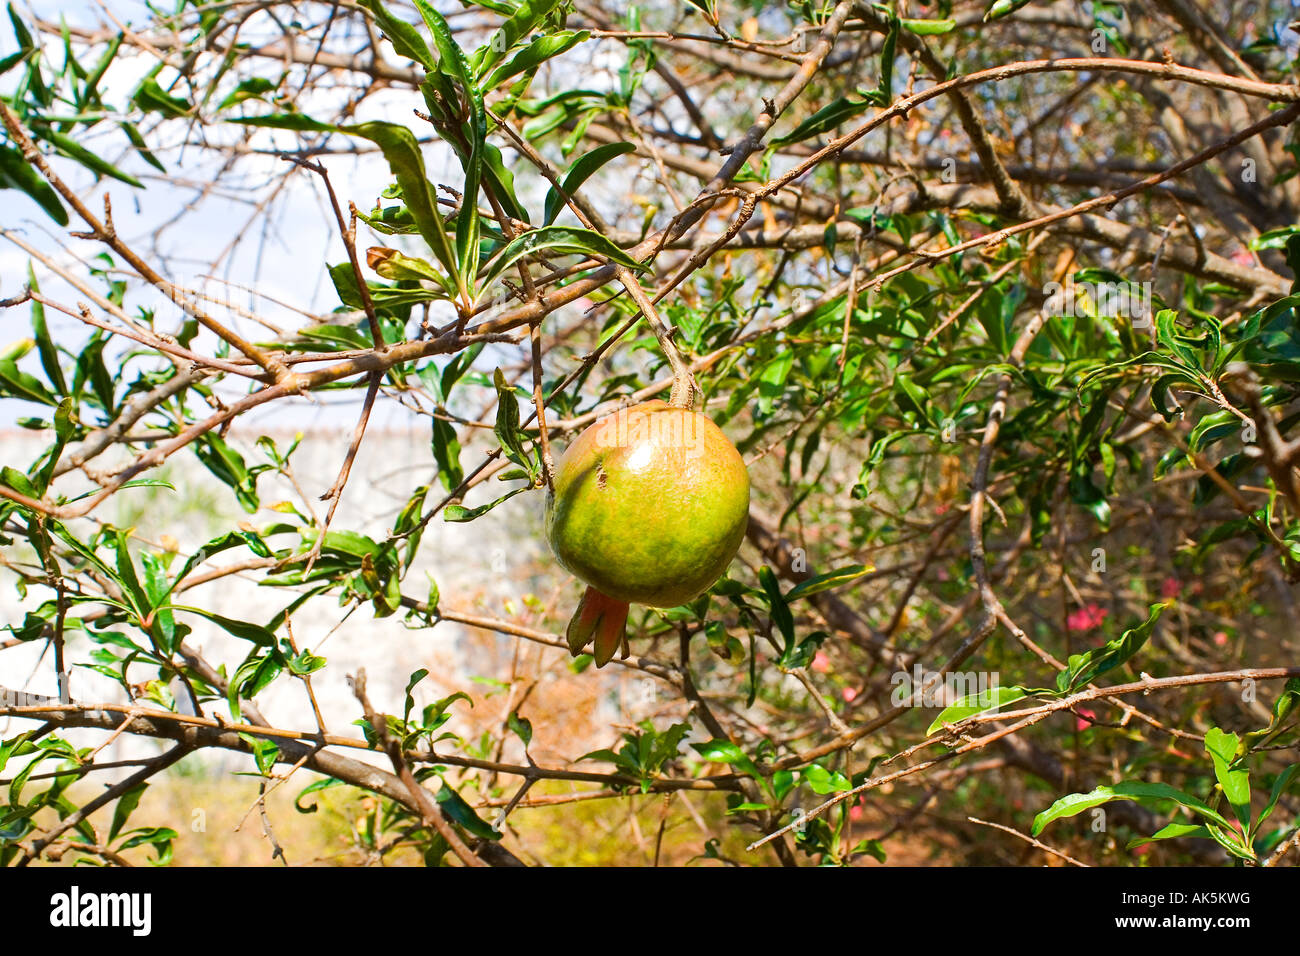 Pomegranate Punica Granatum - Stock Image